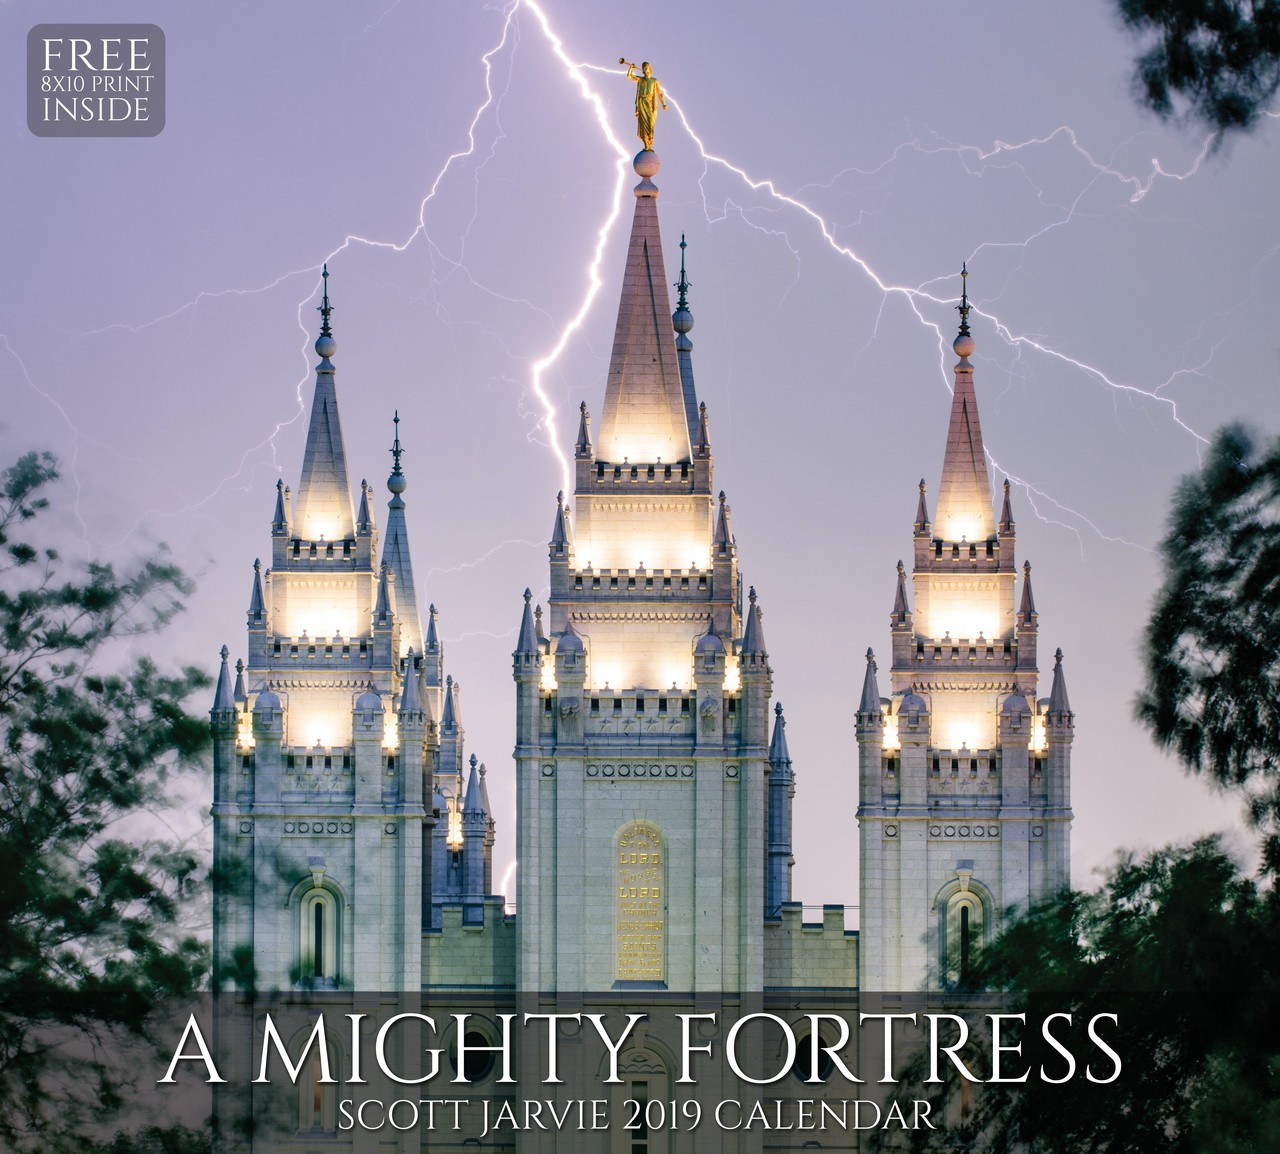 2019 A Mighty Fortress Temple Calendar - Scott Jarvie